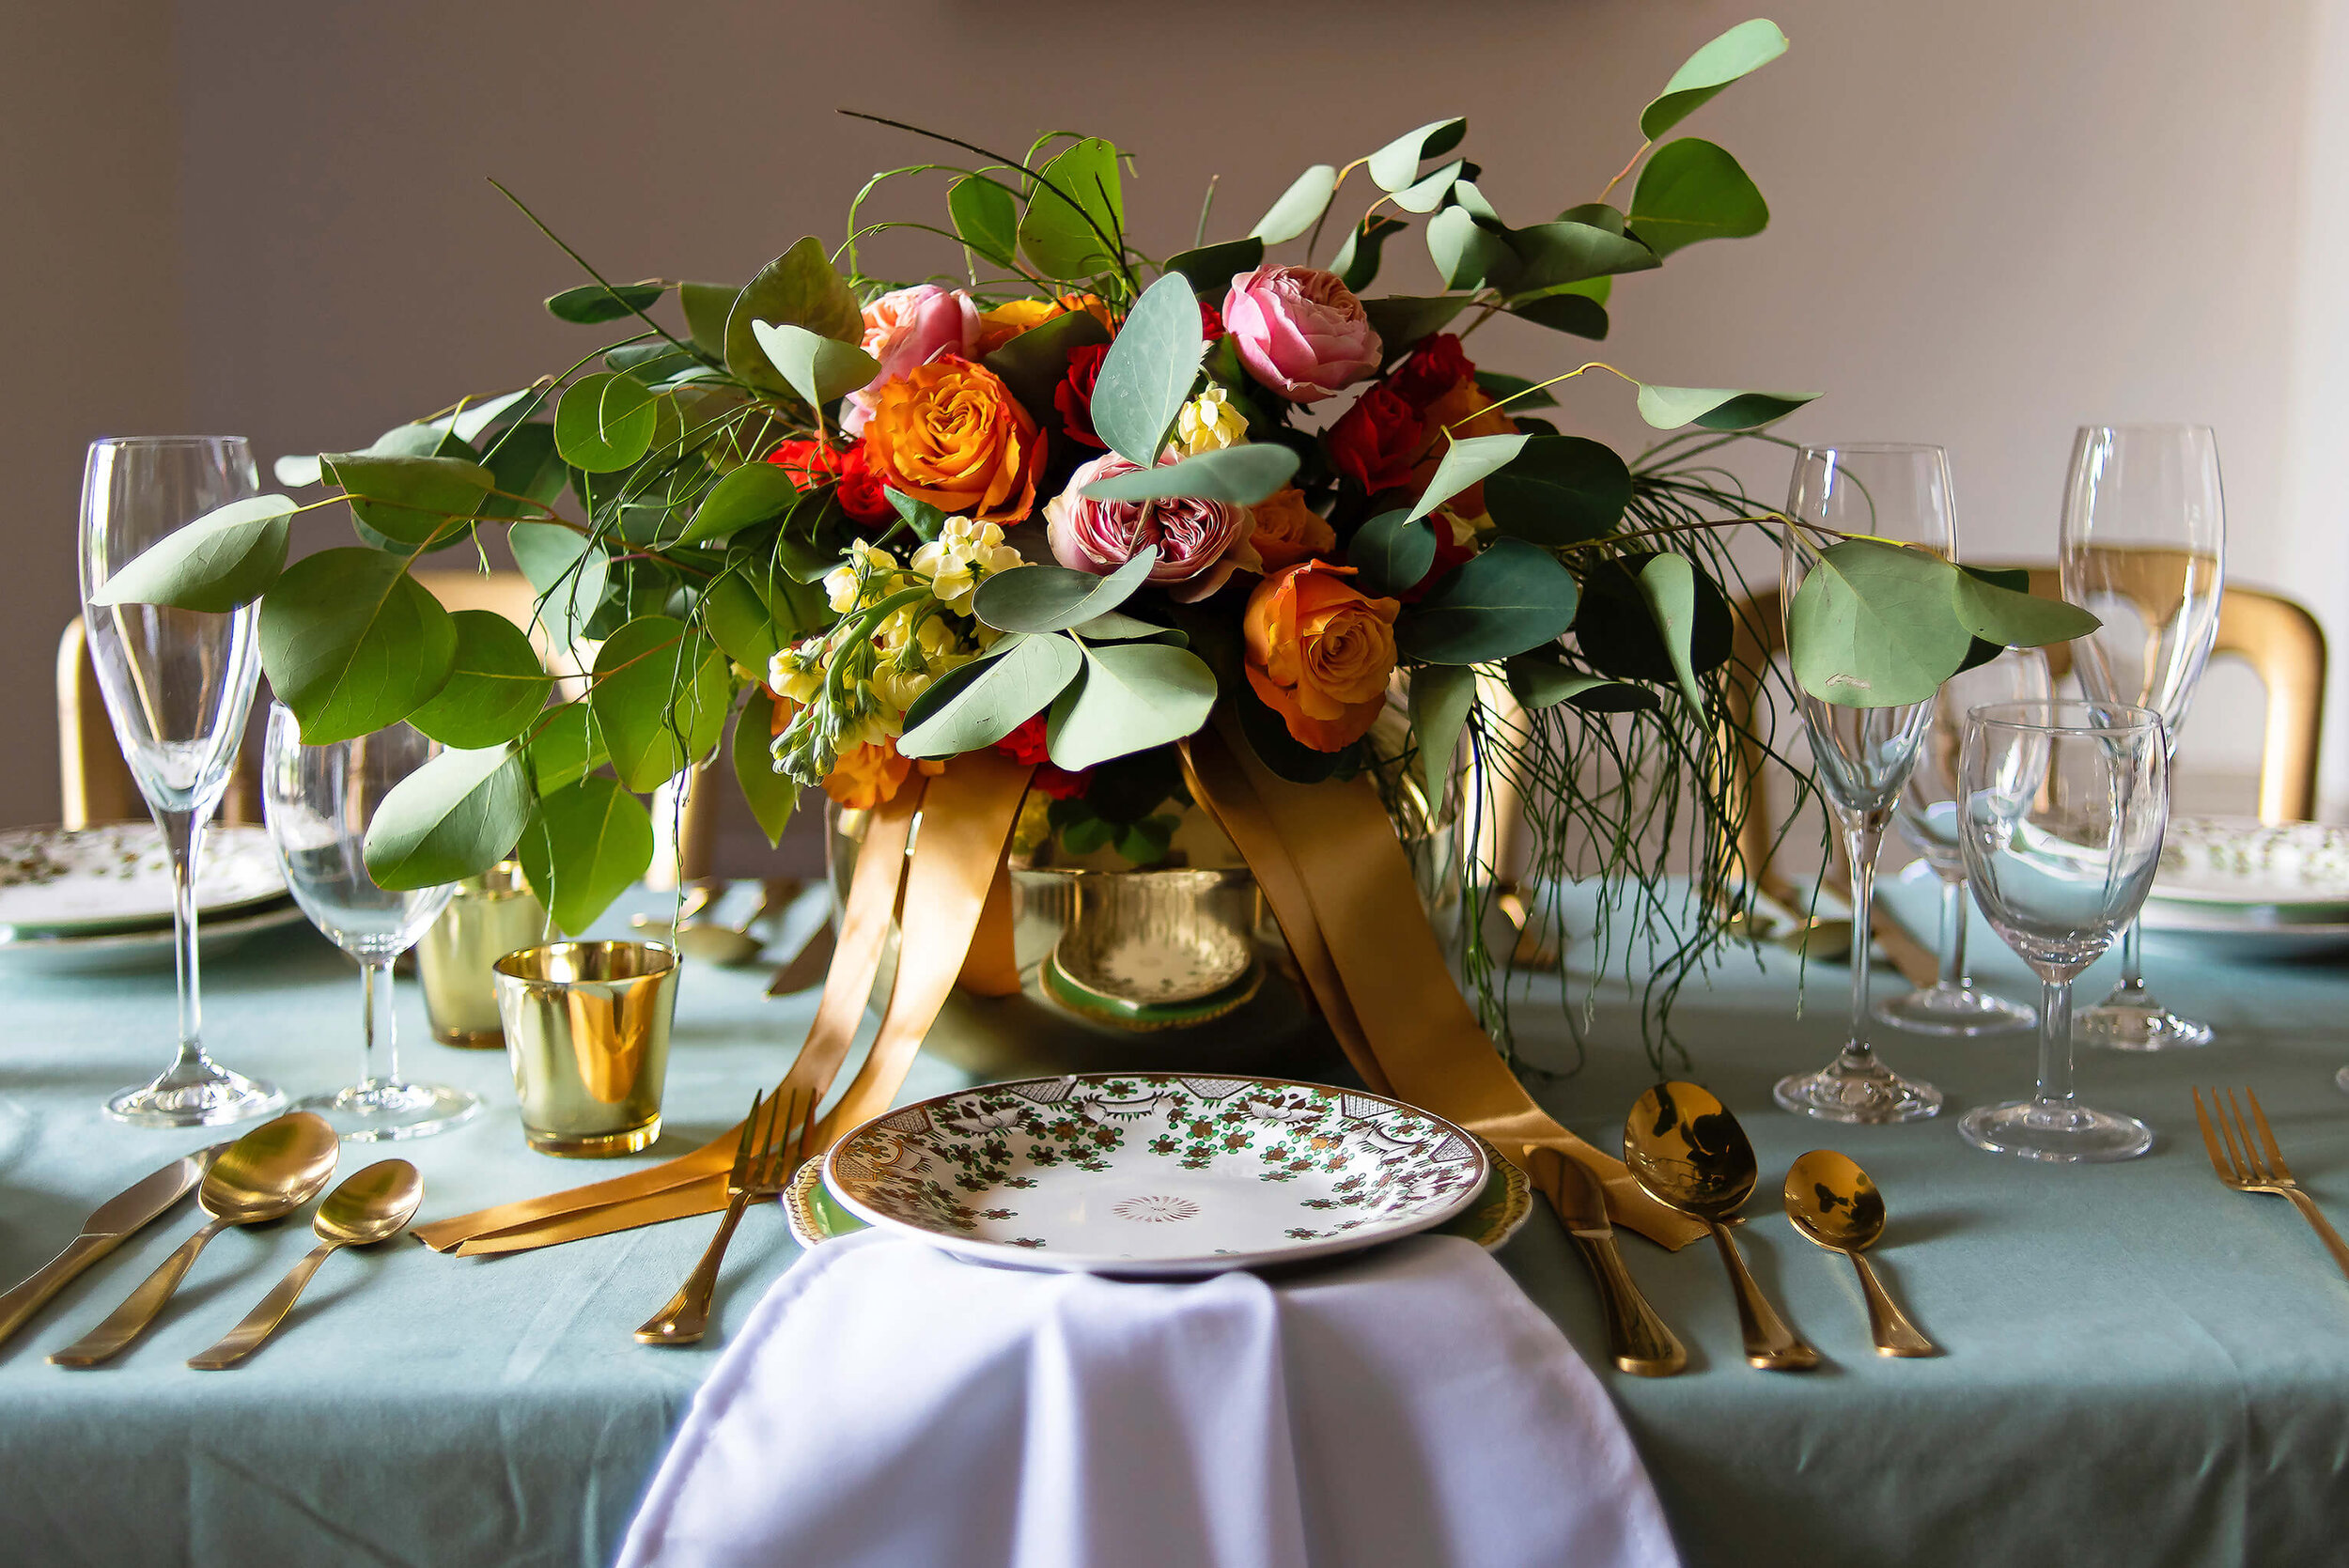 Table setting with floral and foliage center piece at Nurstead Court Wedding Venue, Kent.